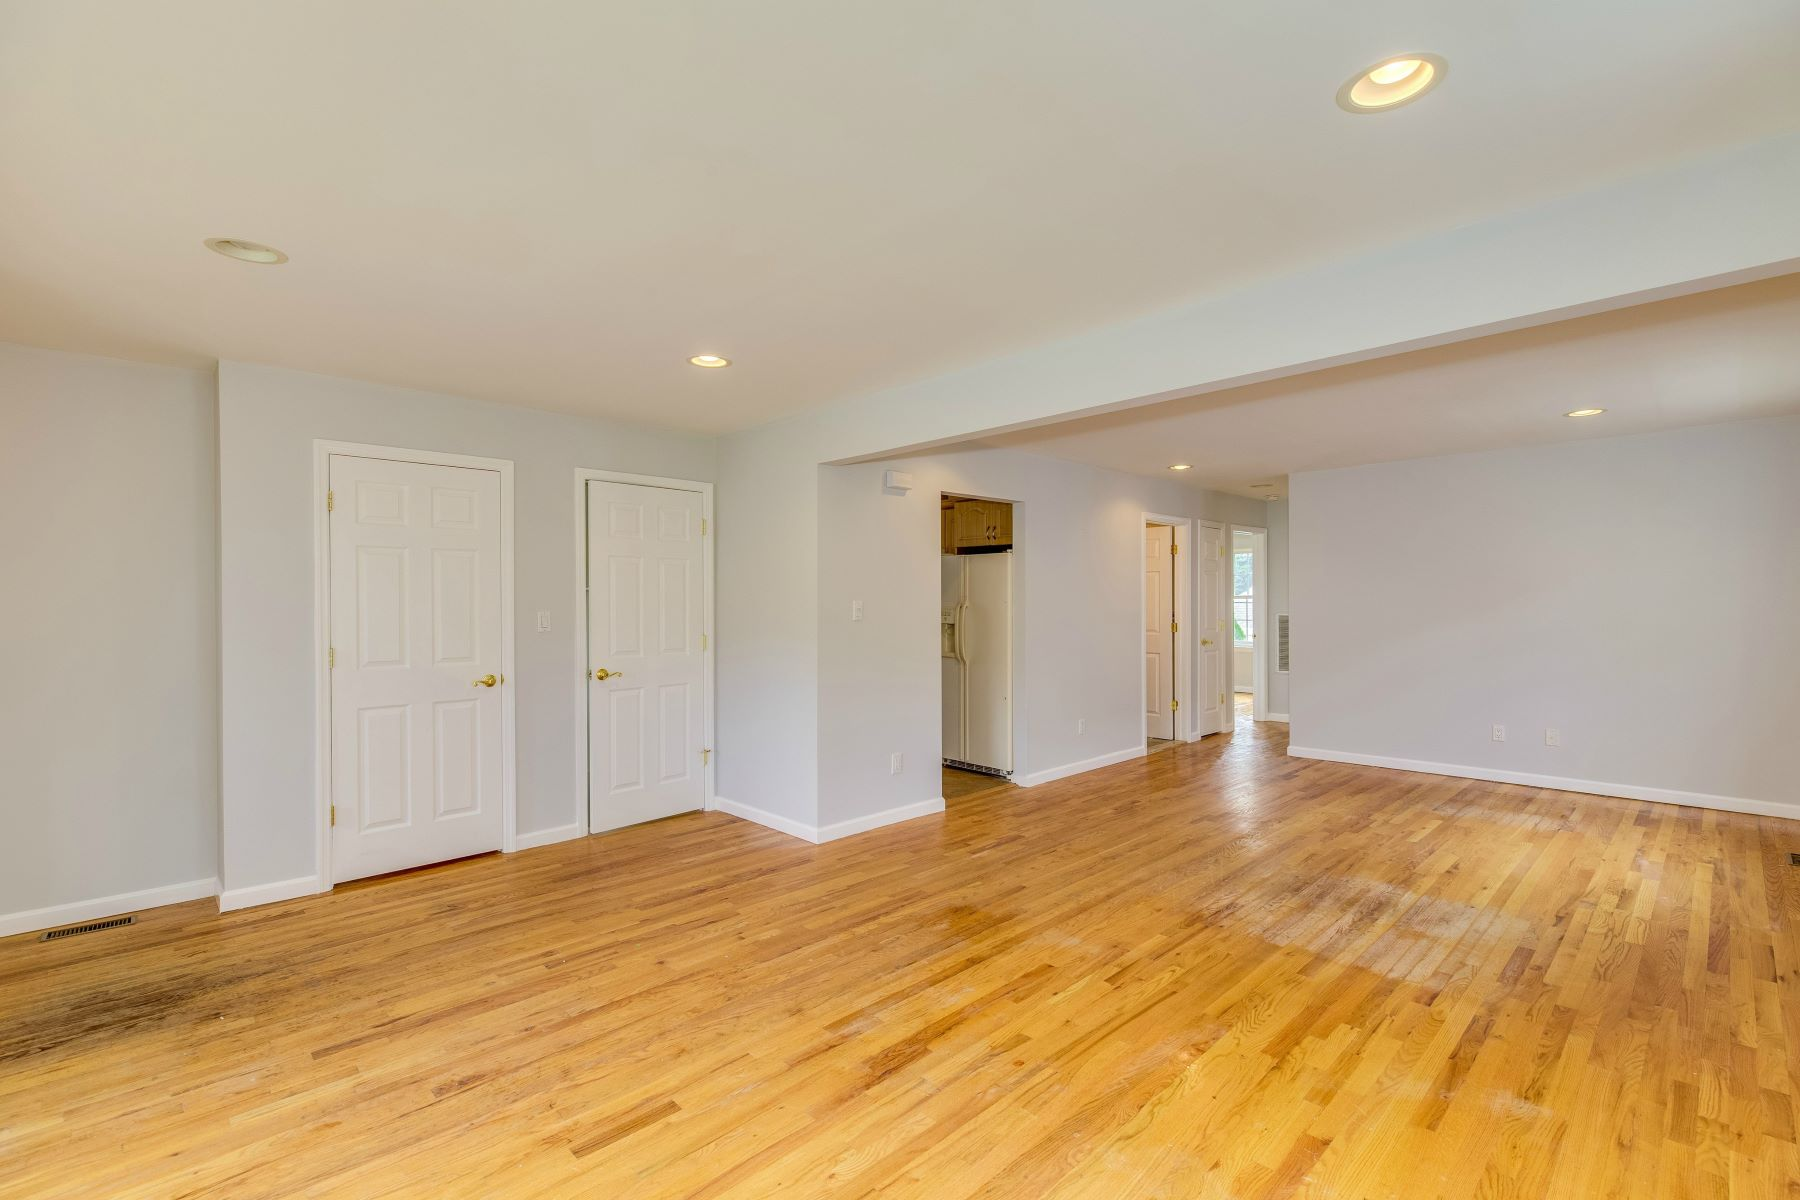 Multi-Family Home for Sale at 63 Edgewood Rd , Port Washington, NY 11050 63 Edgewood Rd, Port Washington, New York, 11050 United States